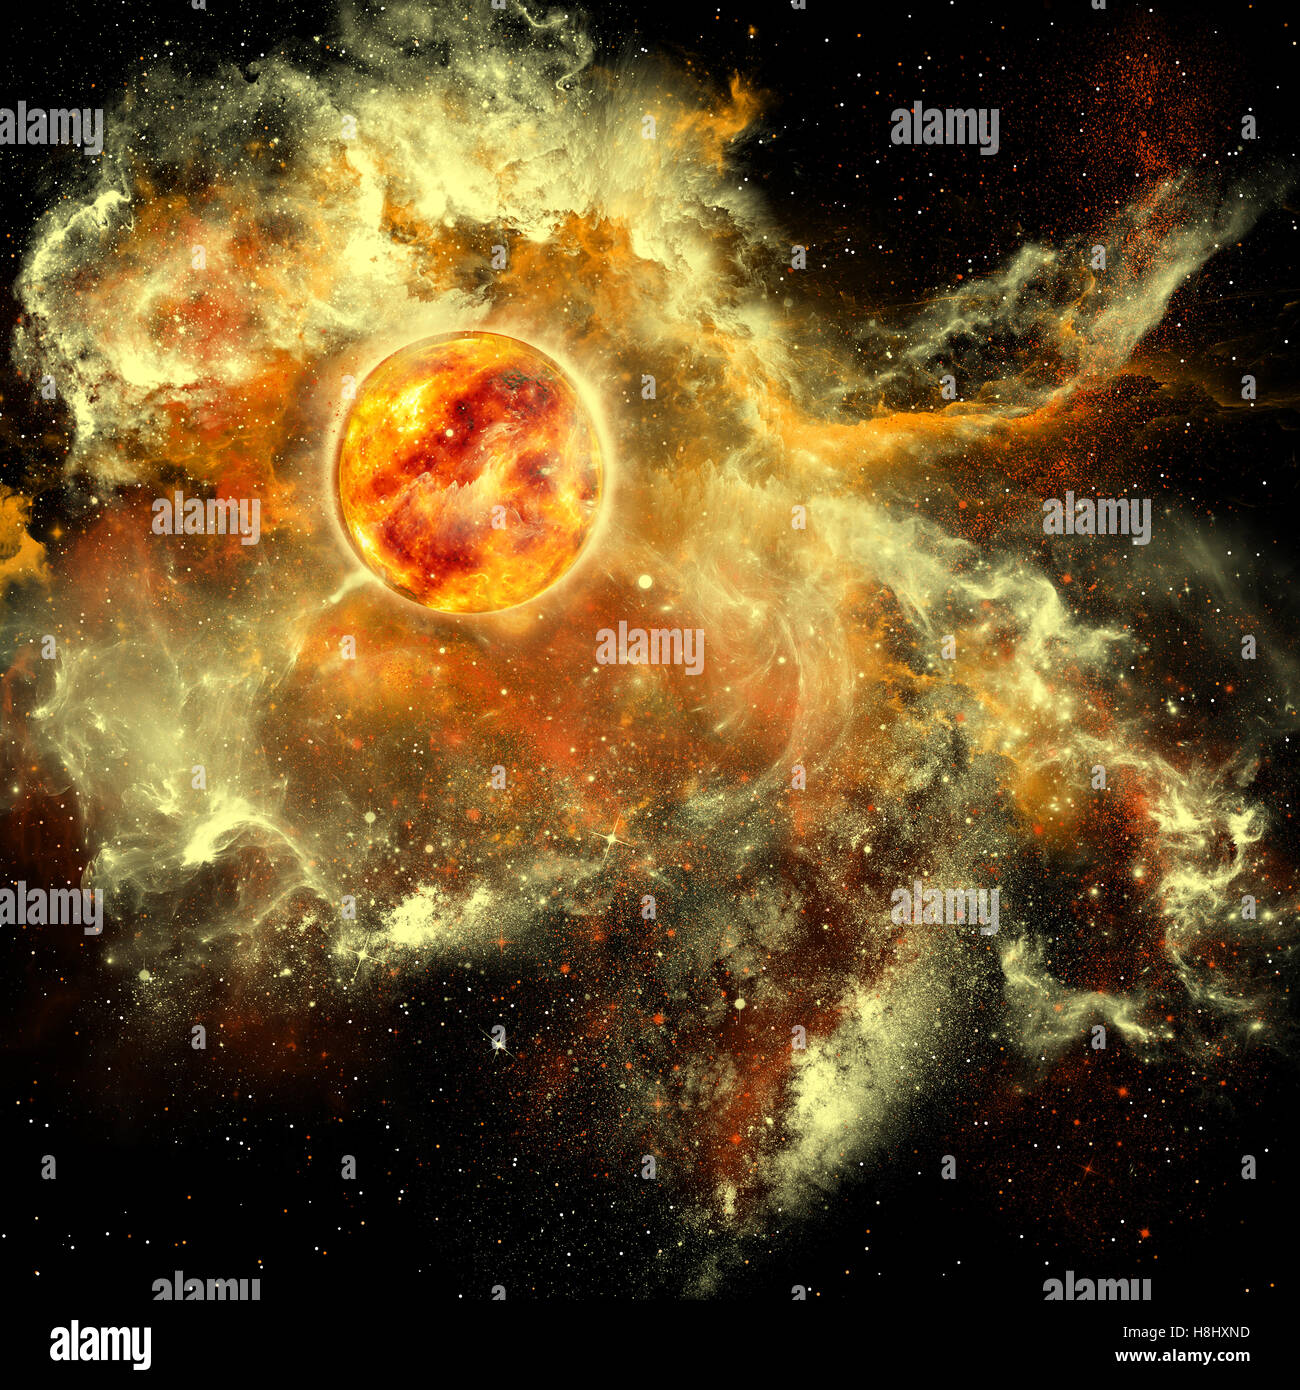 A sun gathers surrounding matter and plasma to become a larger and larger sphere in the universe. - Stock Image